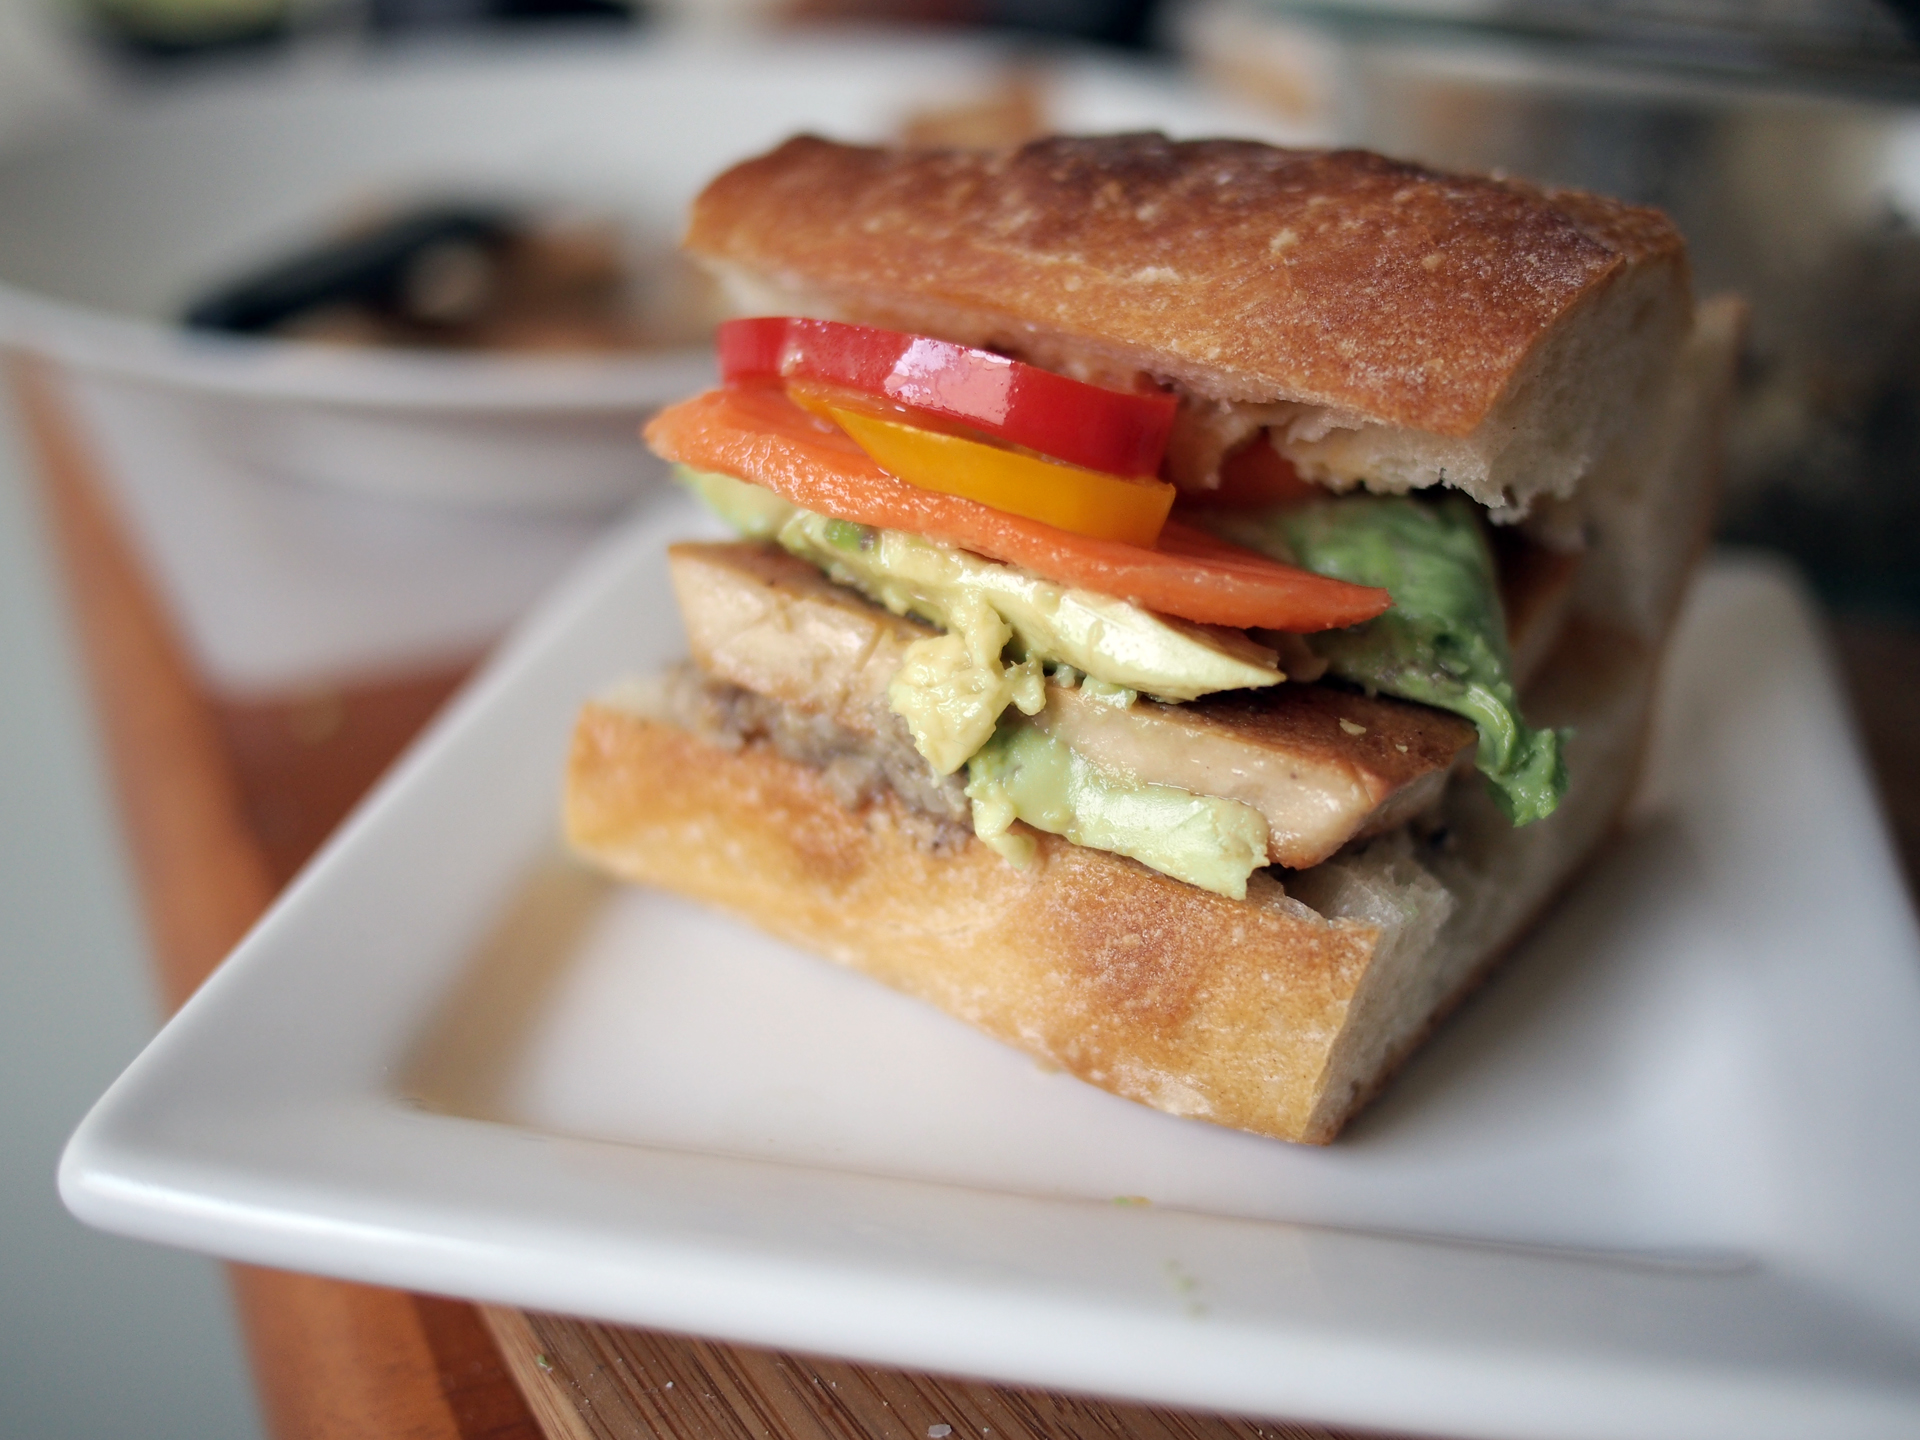 Banh mi torta with cha lua chay, mushroom cashew pate, avocado, pickled carrots, pickled sweet peppers, and sriracha allioli